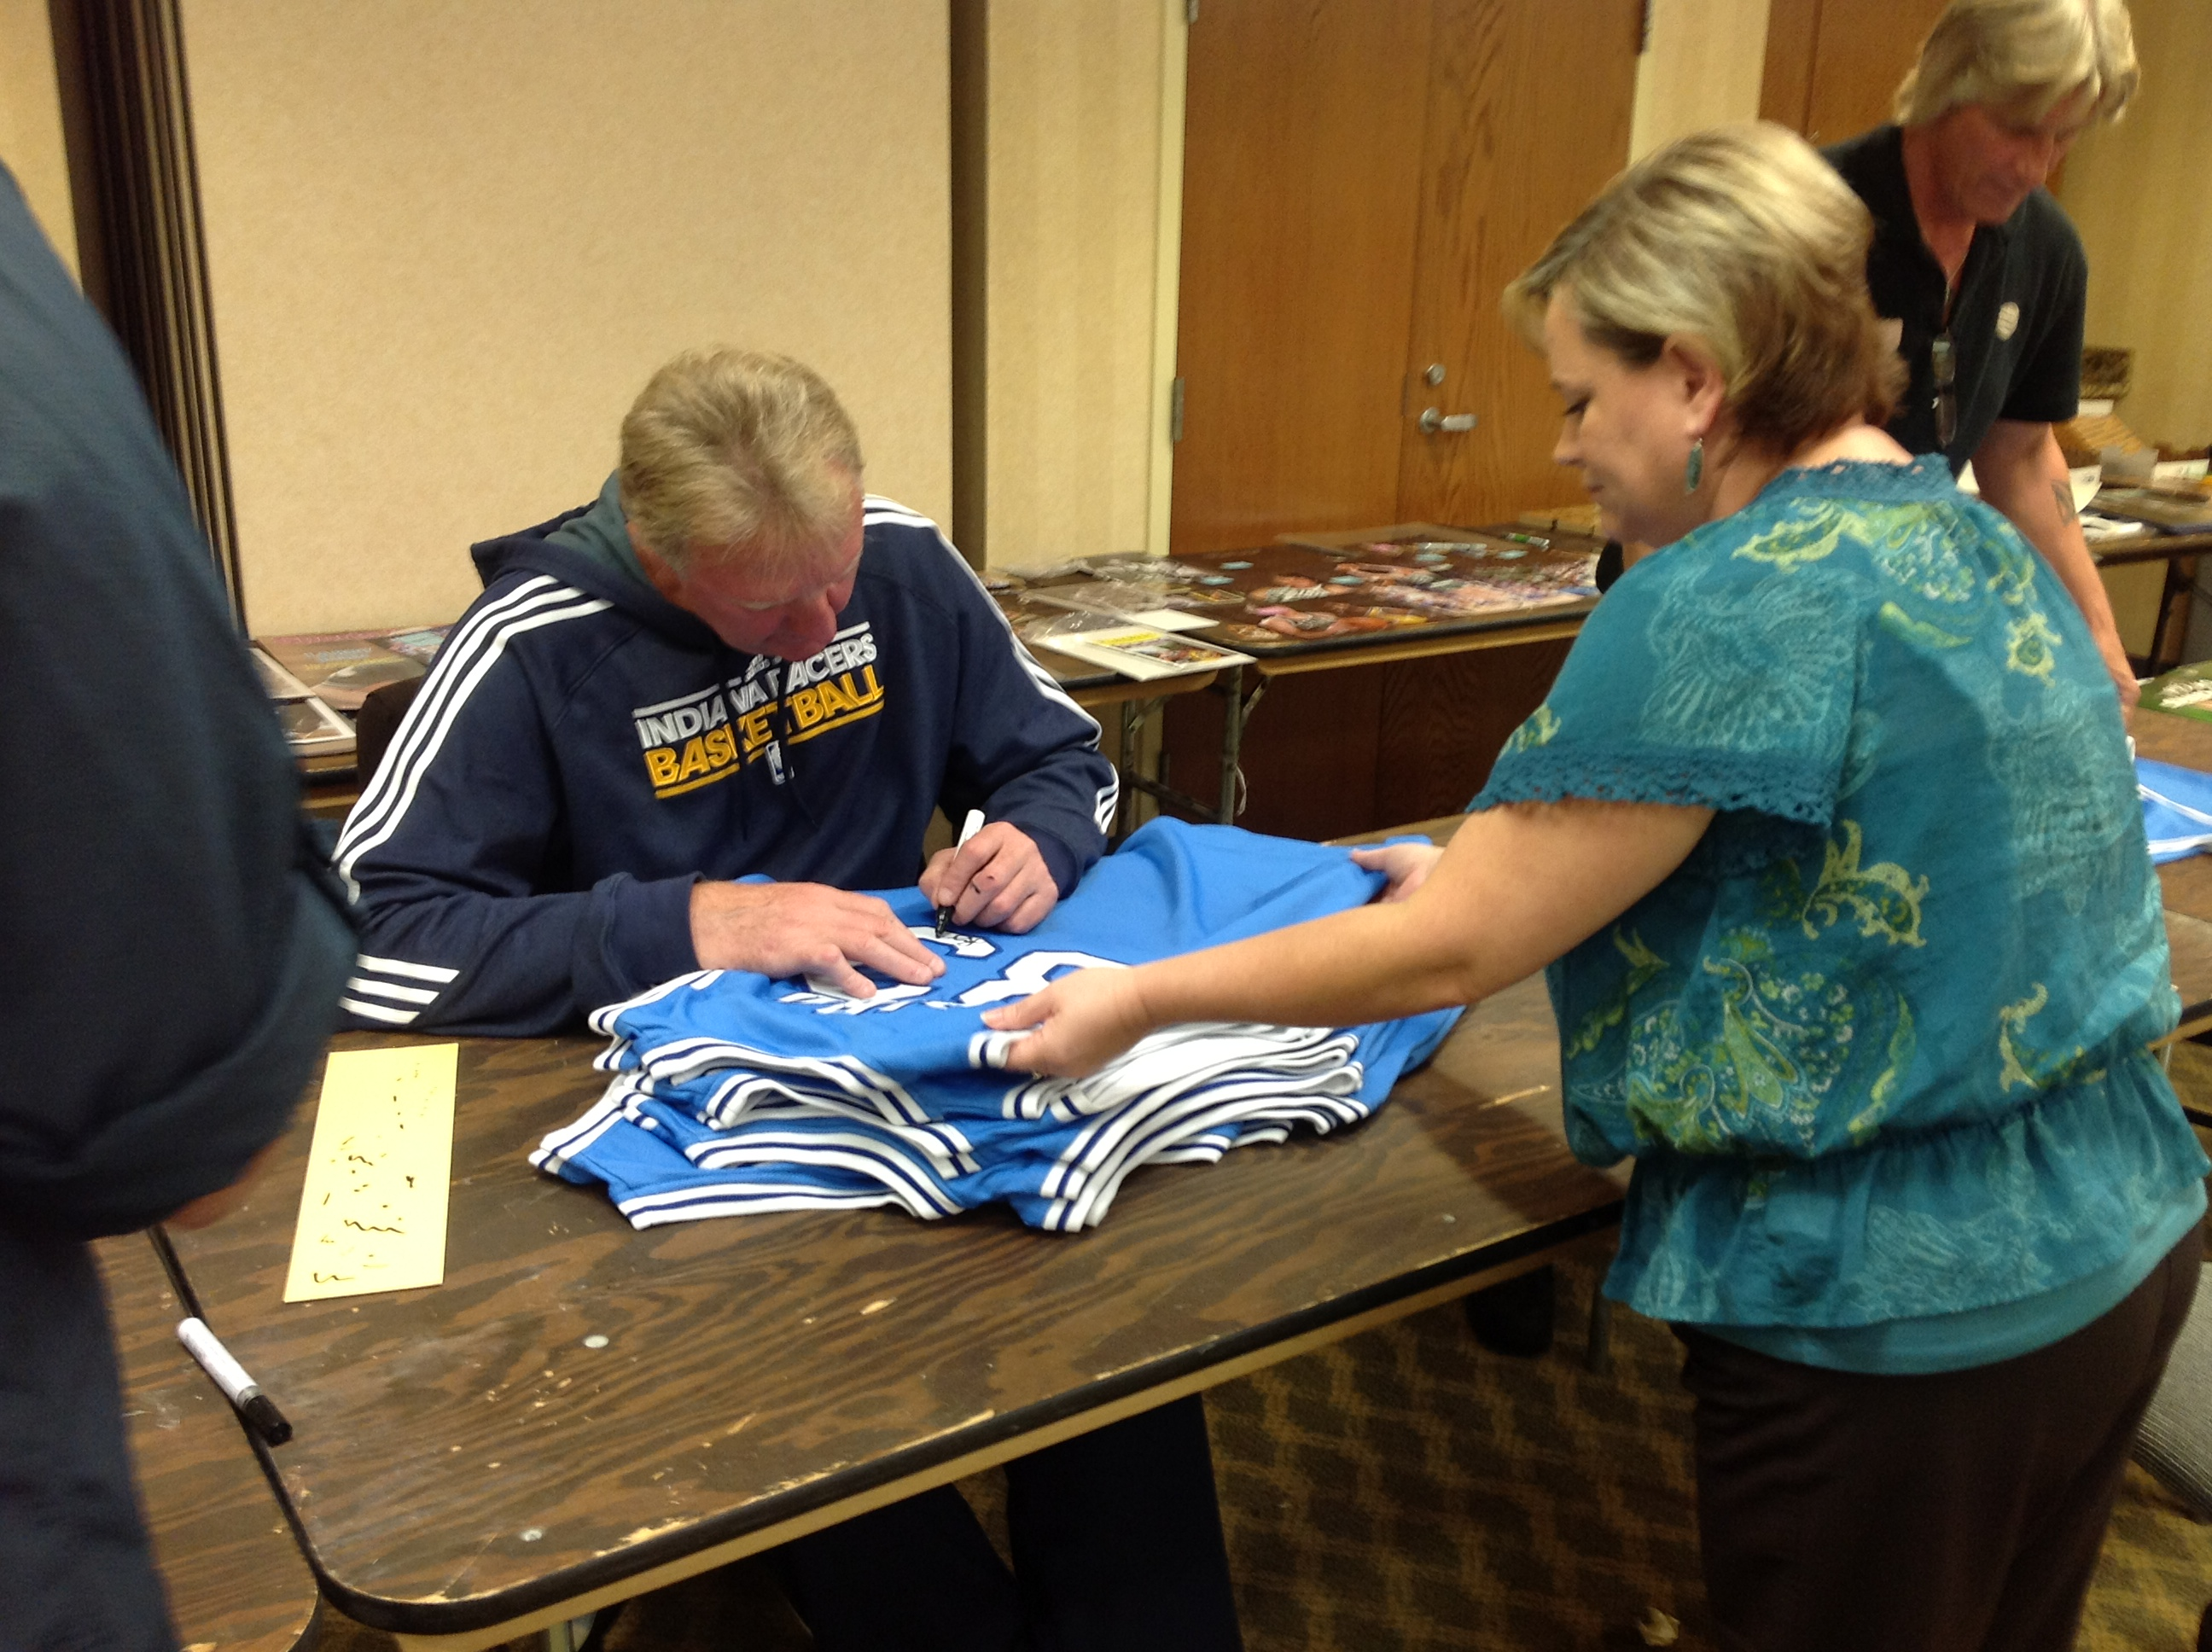 separation shoes 46fdb 6d355 Larry Bird Autographed Indiana State Jersey from Powers ...